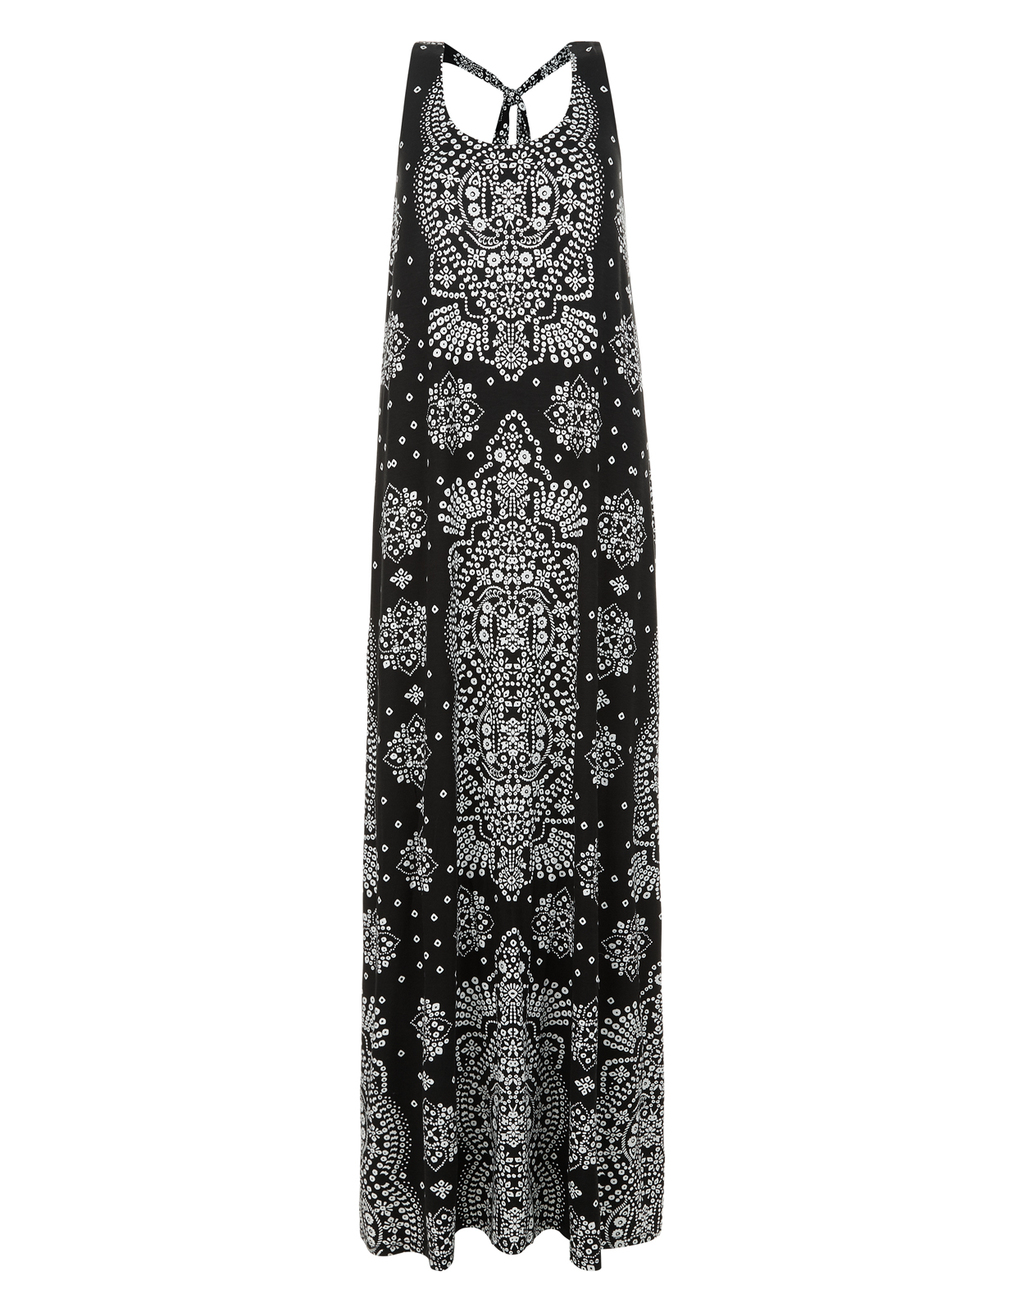 Madeline Printed Jersey Maxi Dress - sleeve style: standard vest straps/shoulder straps; style: maxi dress; length: ankle length; back detail: low cut/open back; secondary colour: light grey; predominant colour: black; occasions: casual, holiday; fit: body skimming; neckline: scoop; fibres: polyester/polyamide - 100%; sleeve length: sleeveless; pattern type: fabric; pattern size: big & busy; pattern: patterned/print; texture group: jersey - stretchy/drapey; season: s/s 2016; wardrobe: highlight